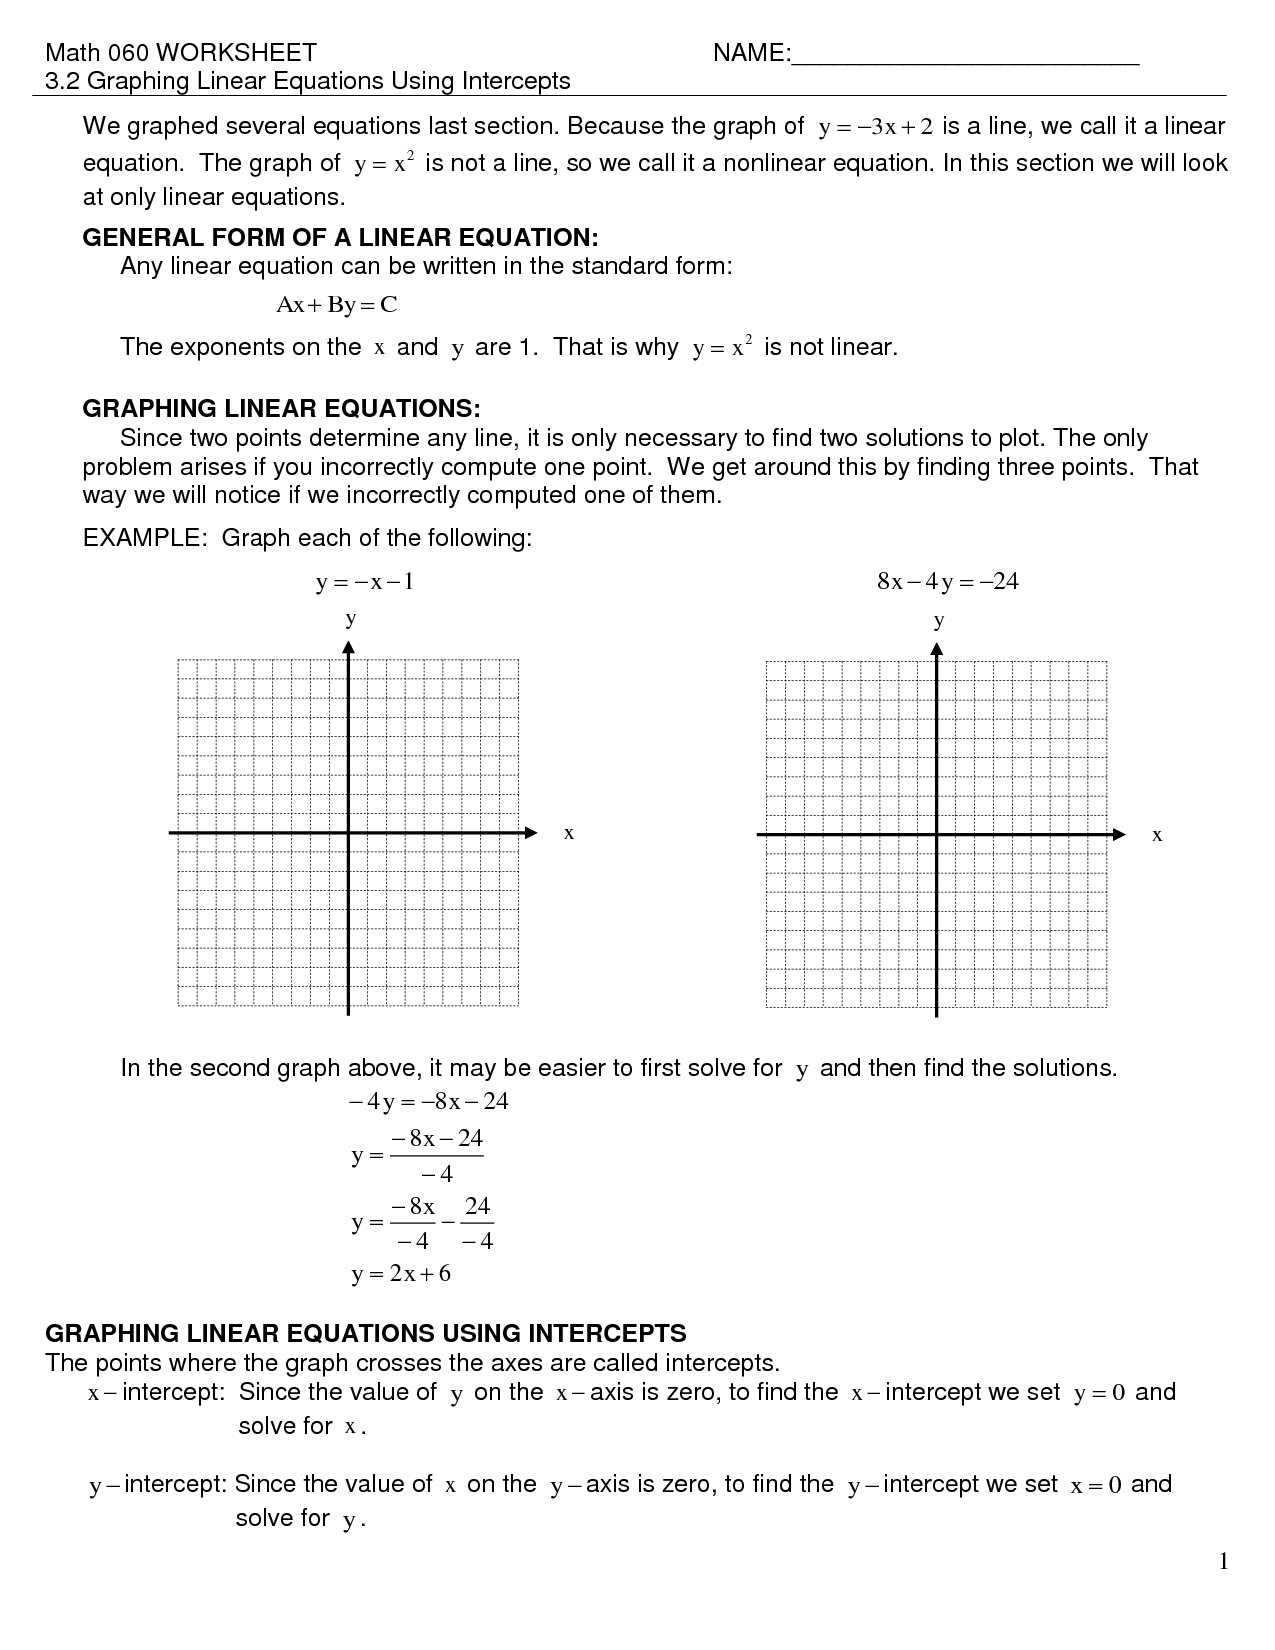 Graphing Linear Equations By Intercepts Worksheet